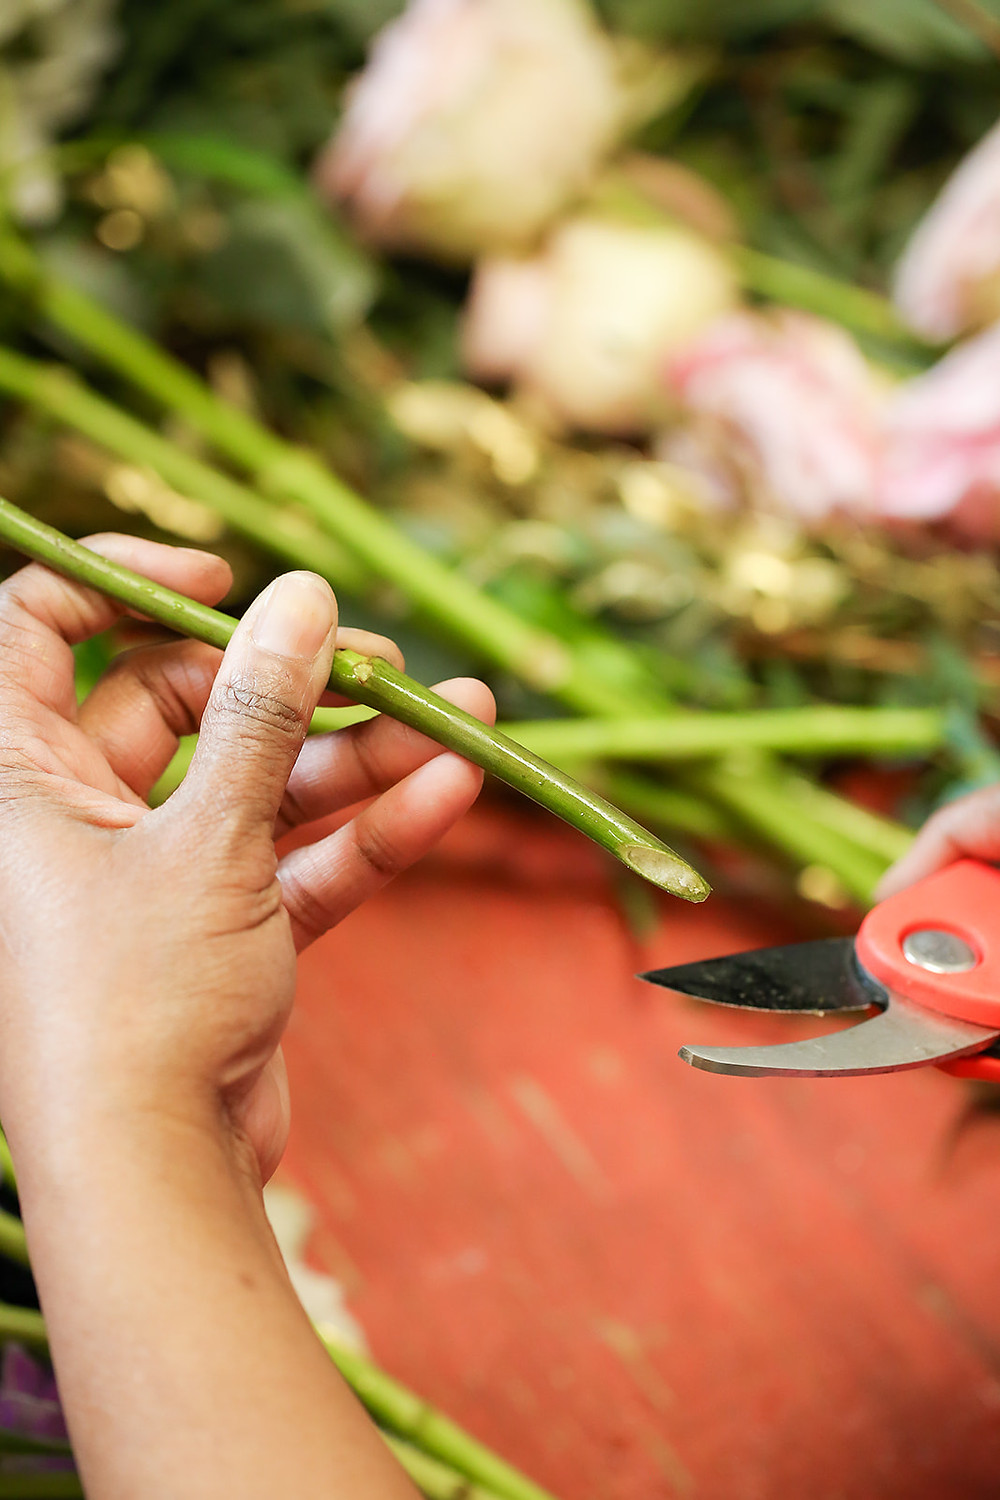 How to cut flower stems to prepare to use in floral designs